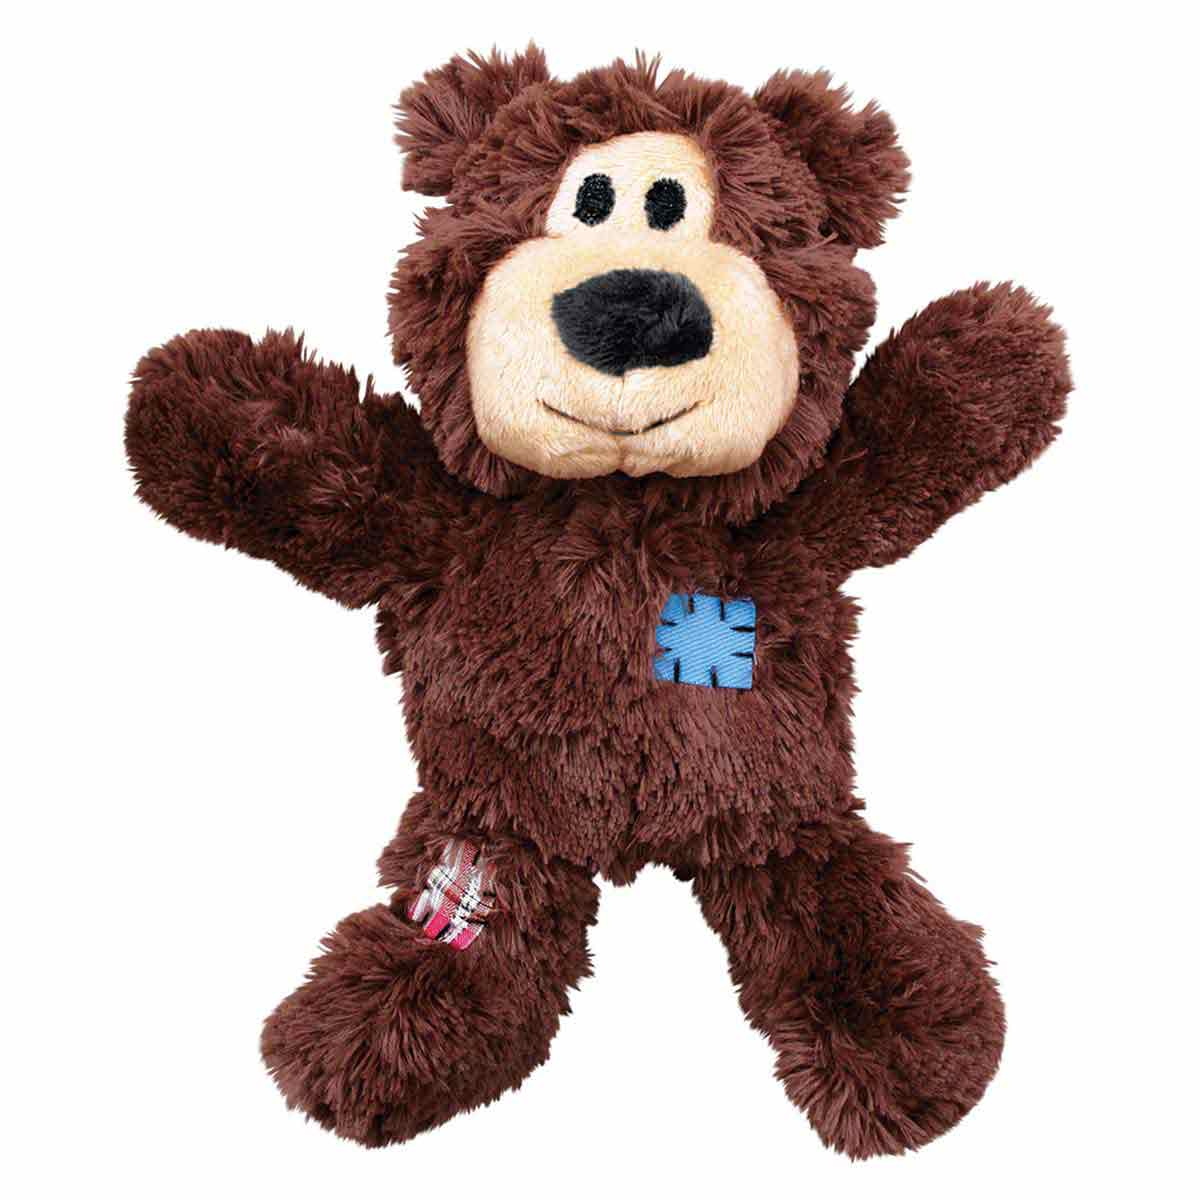 Medium/Large KONG Wild Knots Bear Stuffed Toy for Dogs